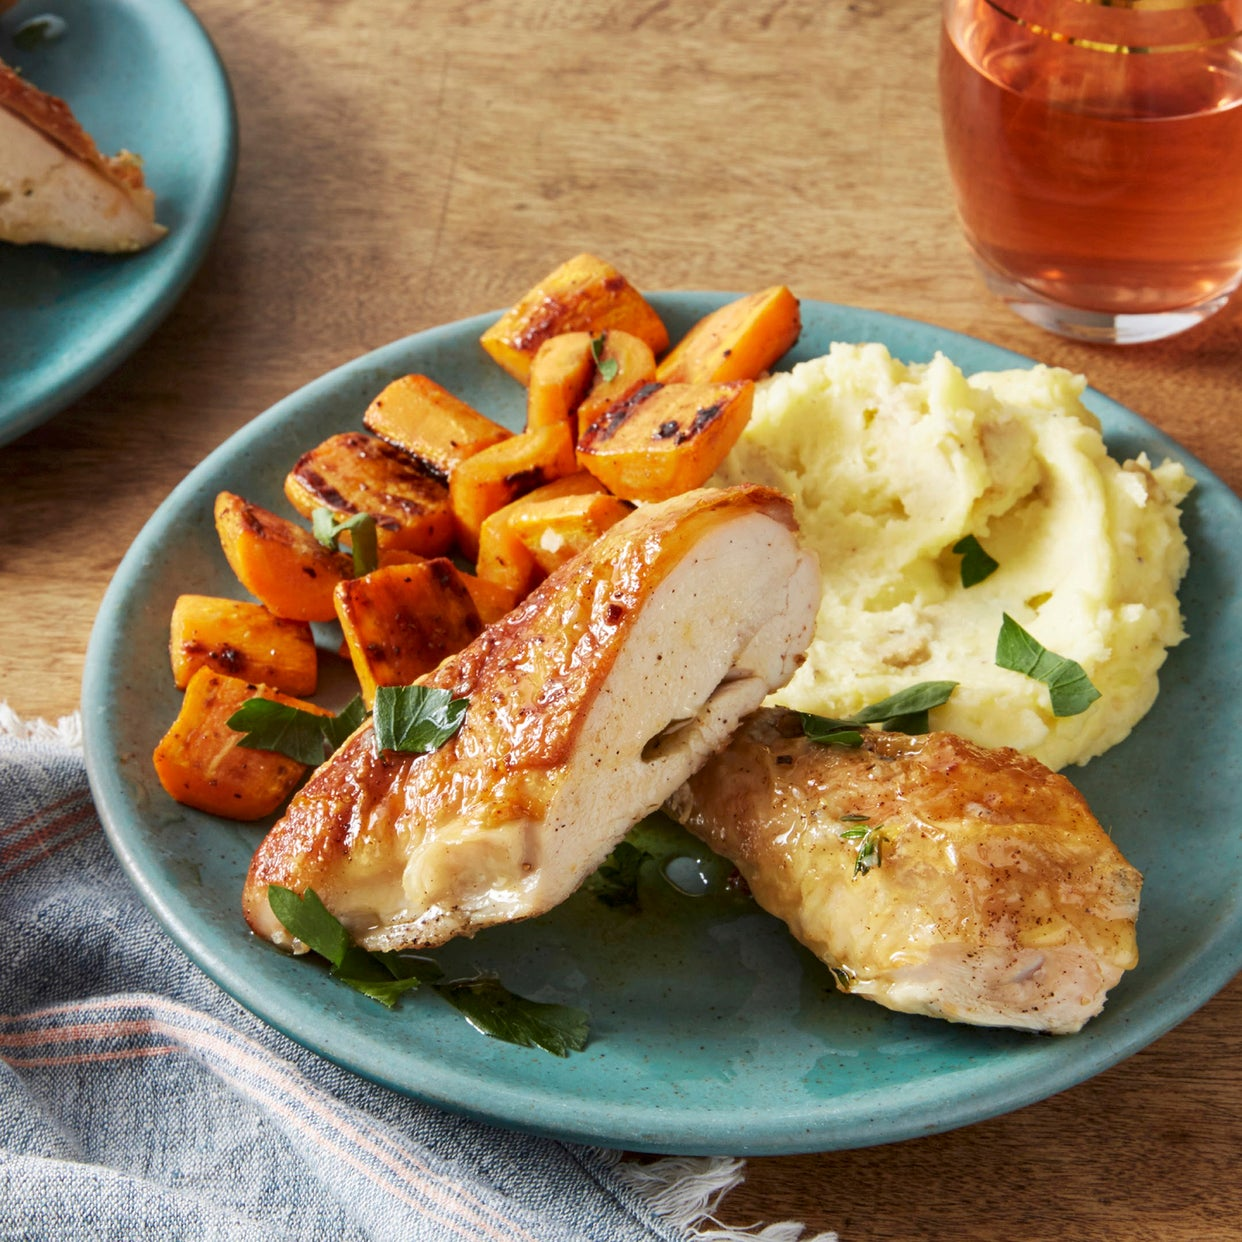 Skillet Chicken With Roasted Potatoes Carrots Recipe: Roast Potatoes And Carrots With Chicken